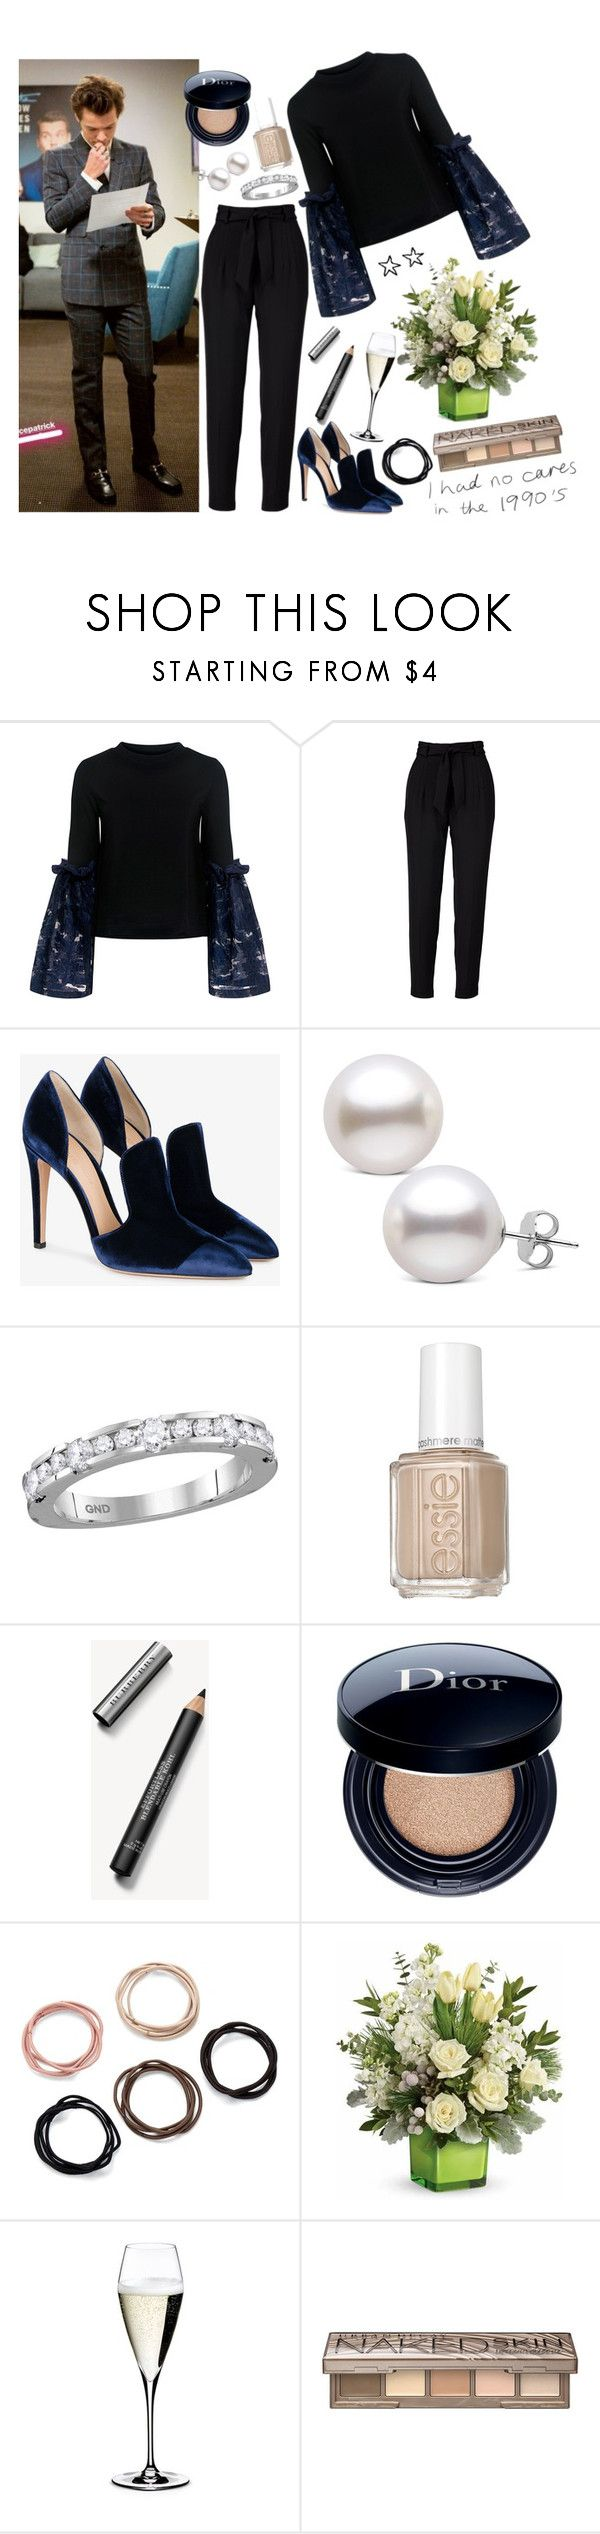 """""""Being a guest at the Late Late show with Harry"""" by phenomeniall-style ❤ liked on Polyvore featuring Mother of Pearl, Gianvito Rossi, Essie, Burberry, Christian Dior, Riedel, Urban Decay and harrystyles"""